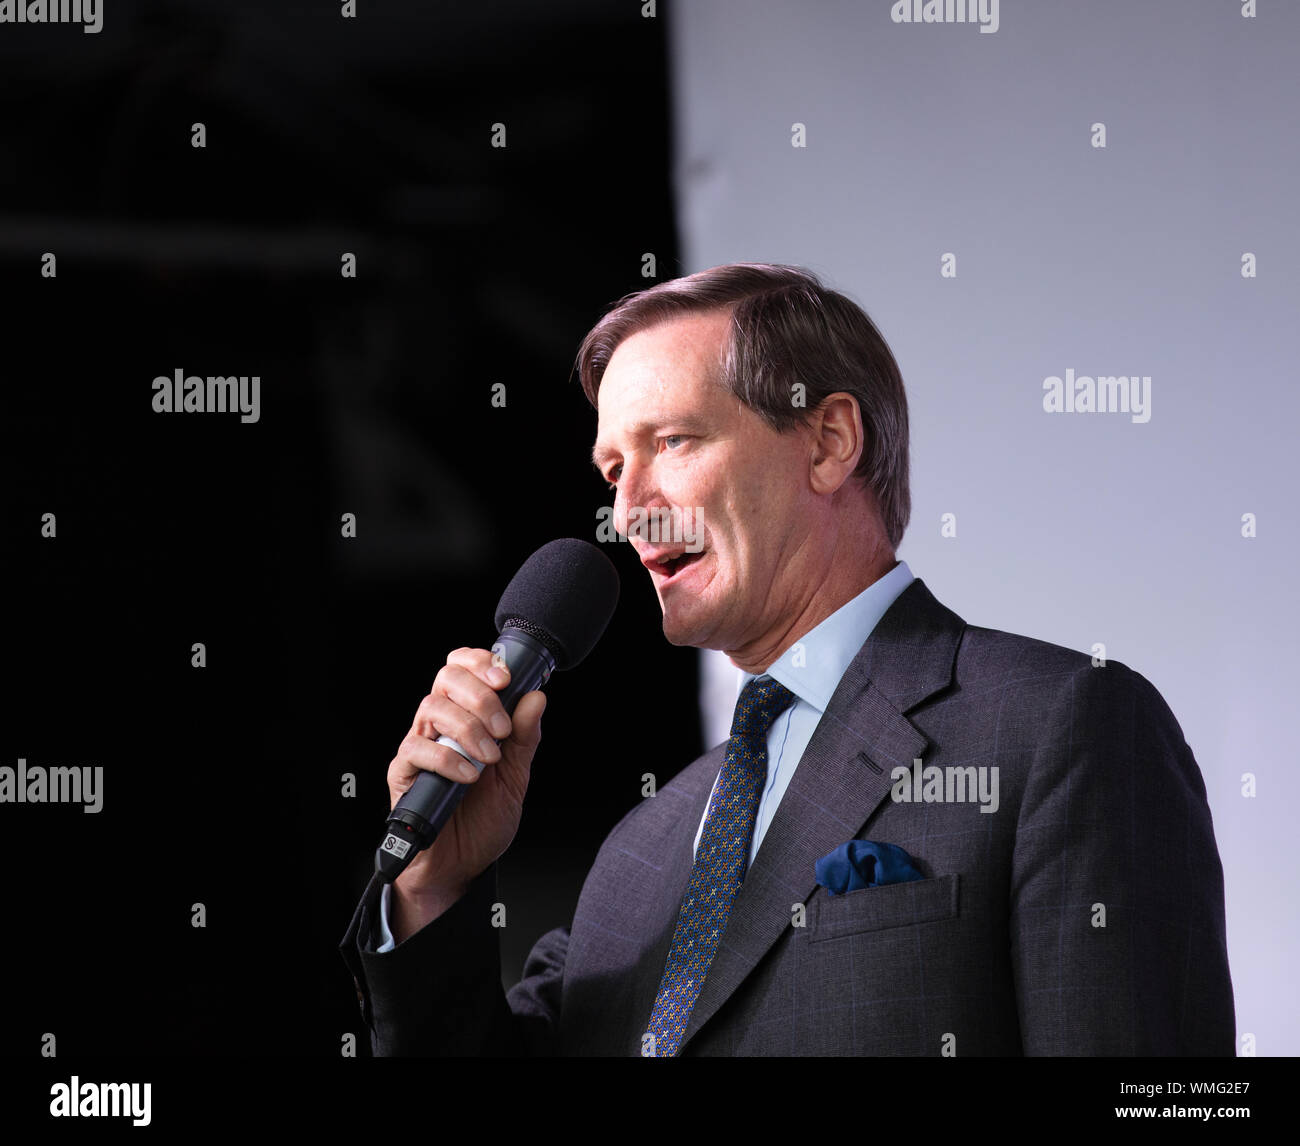 London, UK. 4th September 2019. Conservative Member of Parliament, Dominic Grieve MP, speaks to a crowd of anti-Brexit protesters on Parliament Square. Credit: Joe Kuis / Alamy News Stock Photo